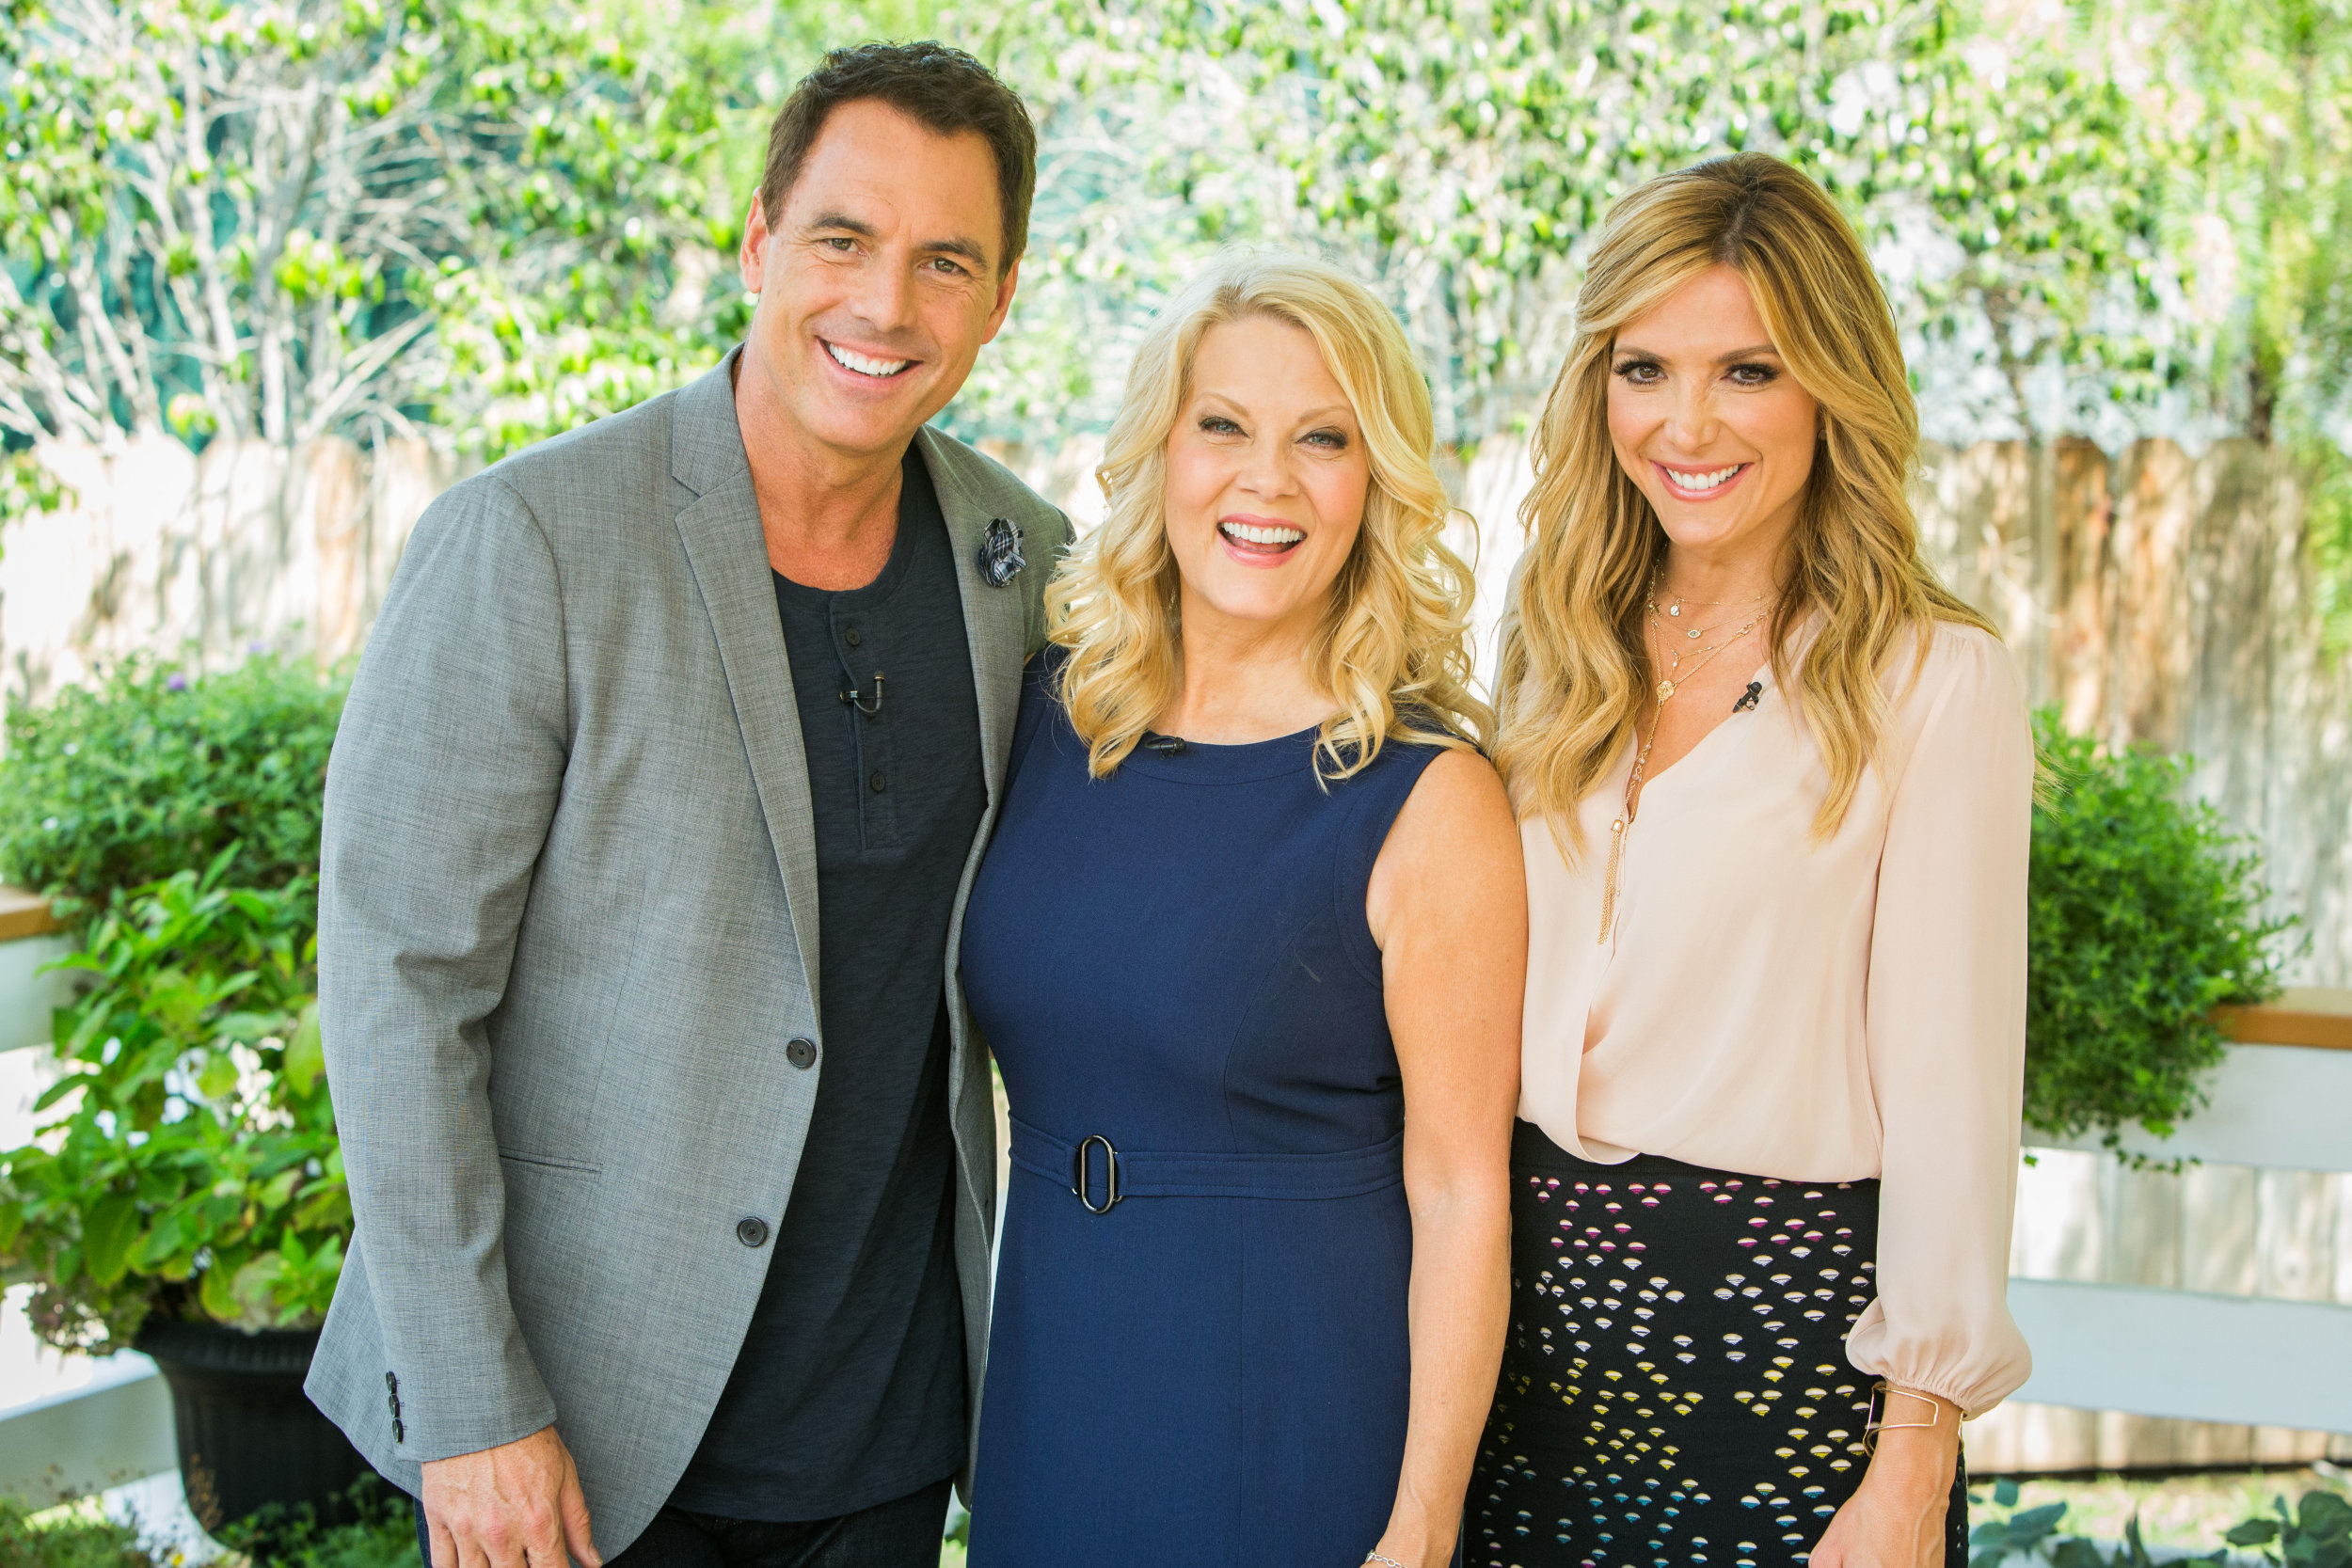 Hollywood steals home and family - Friday August 26th 2016